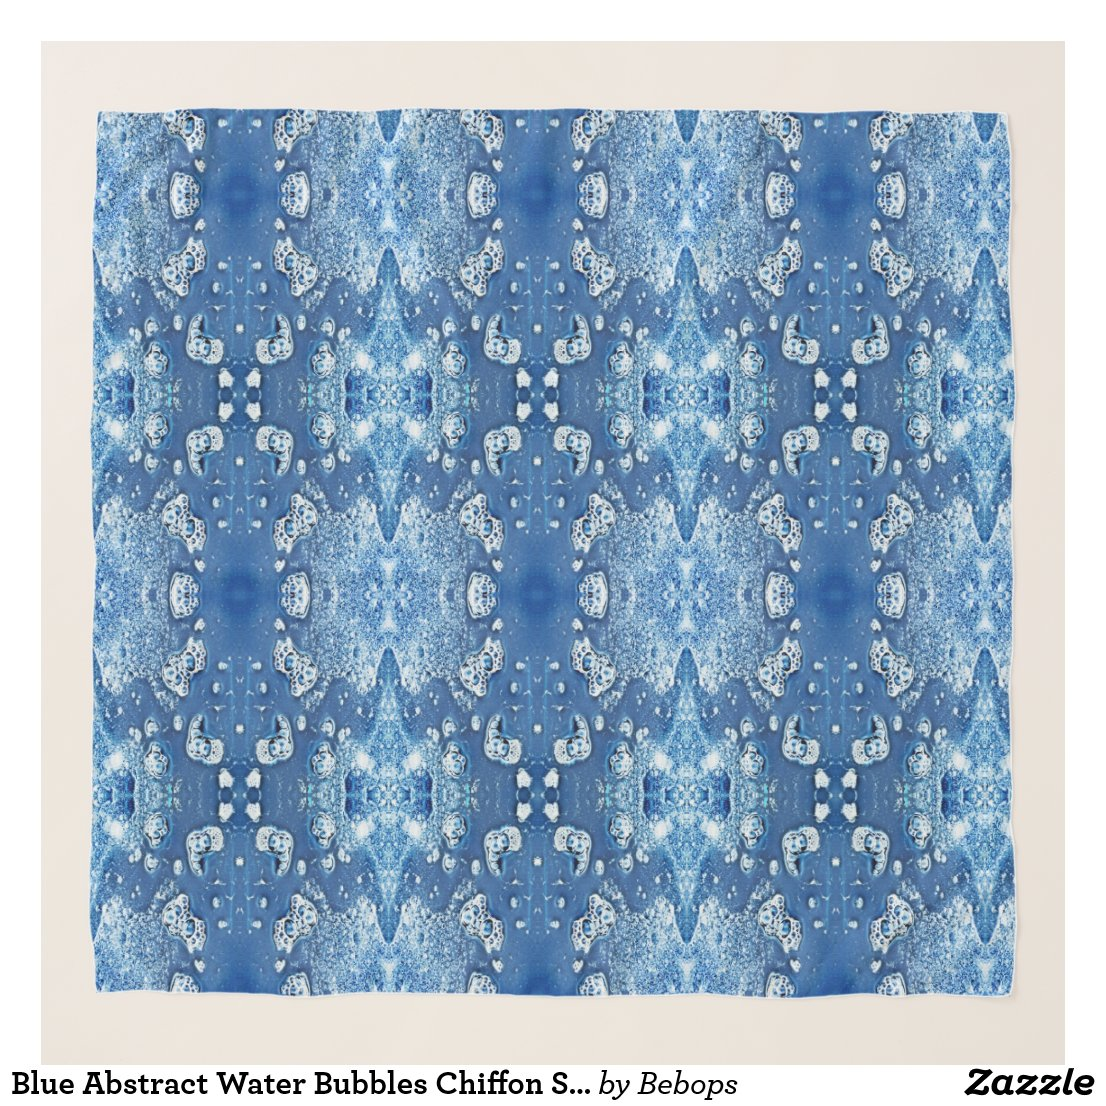 Blue Abstract Water Bubbles Chiffon Scarf